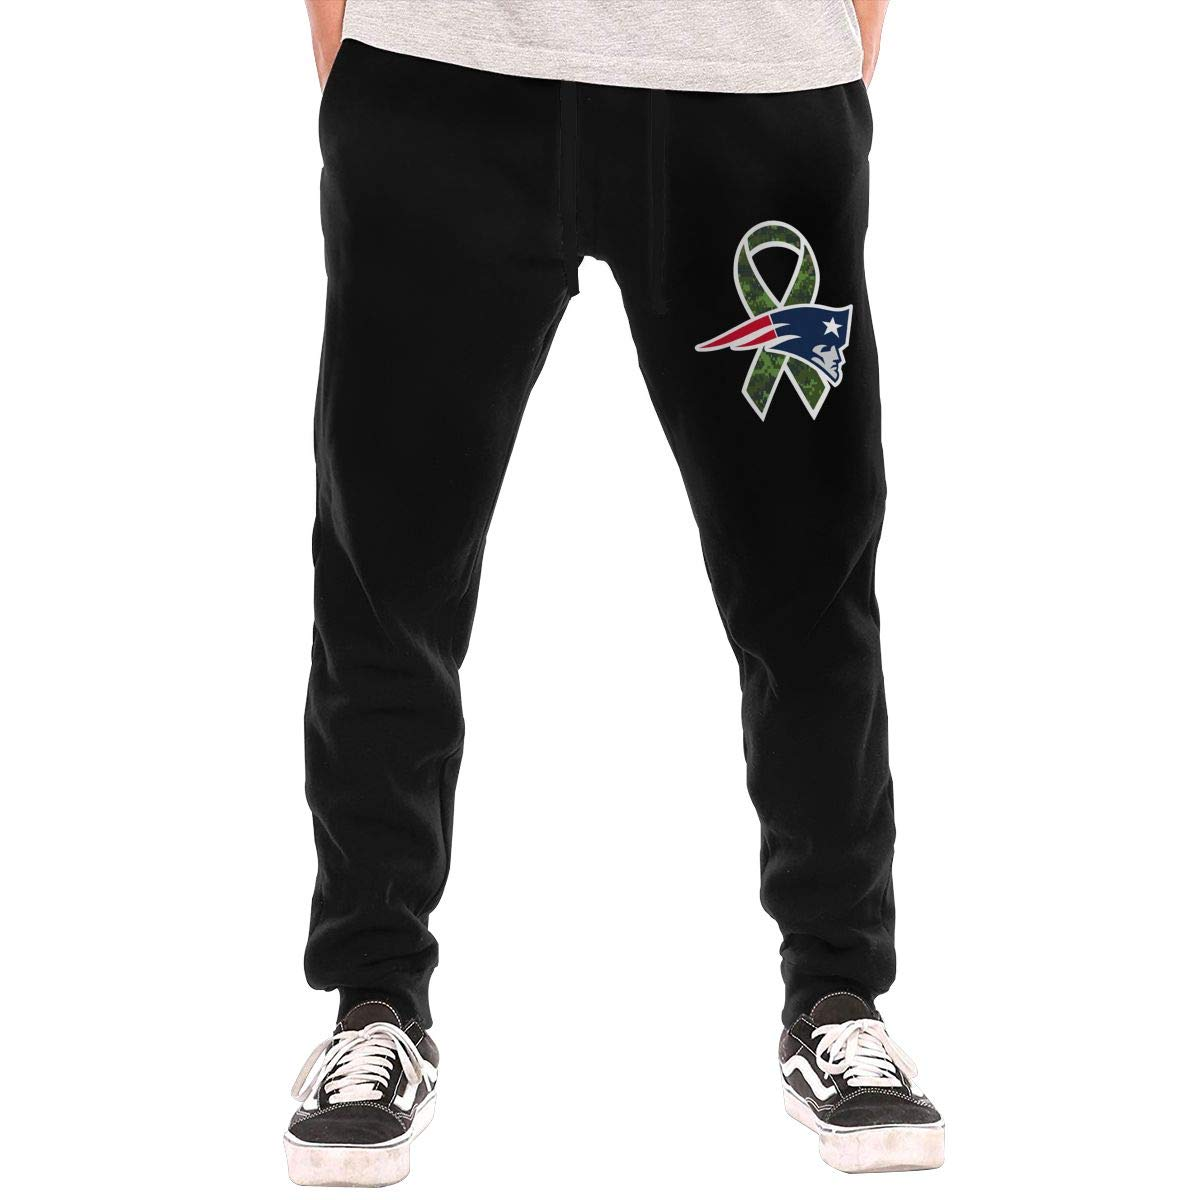 b16d05293 Black BarWords Men's Casual Casual Casual Sweatpants  New-England-Patriots-Coma-Logo Jogger Pants Gym Workout Running Sportswear  Trousers 43c984